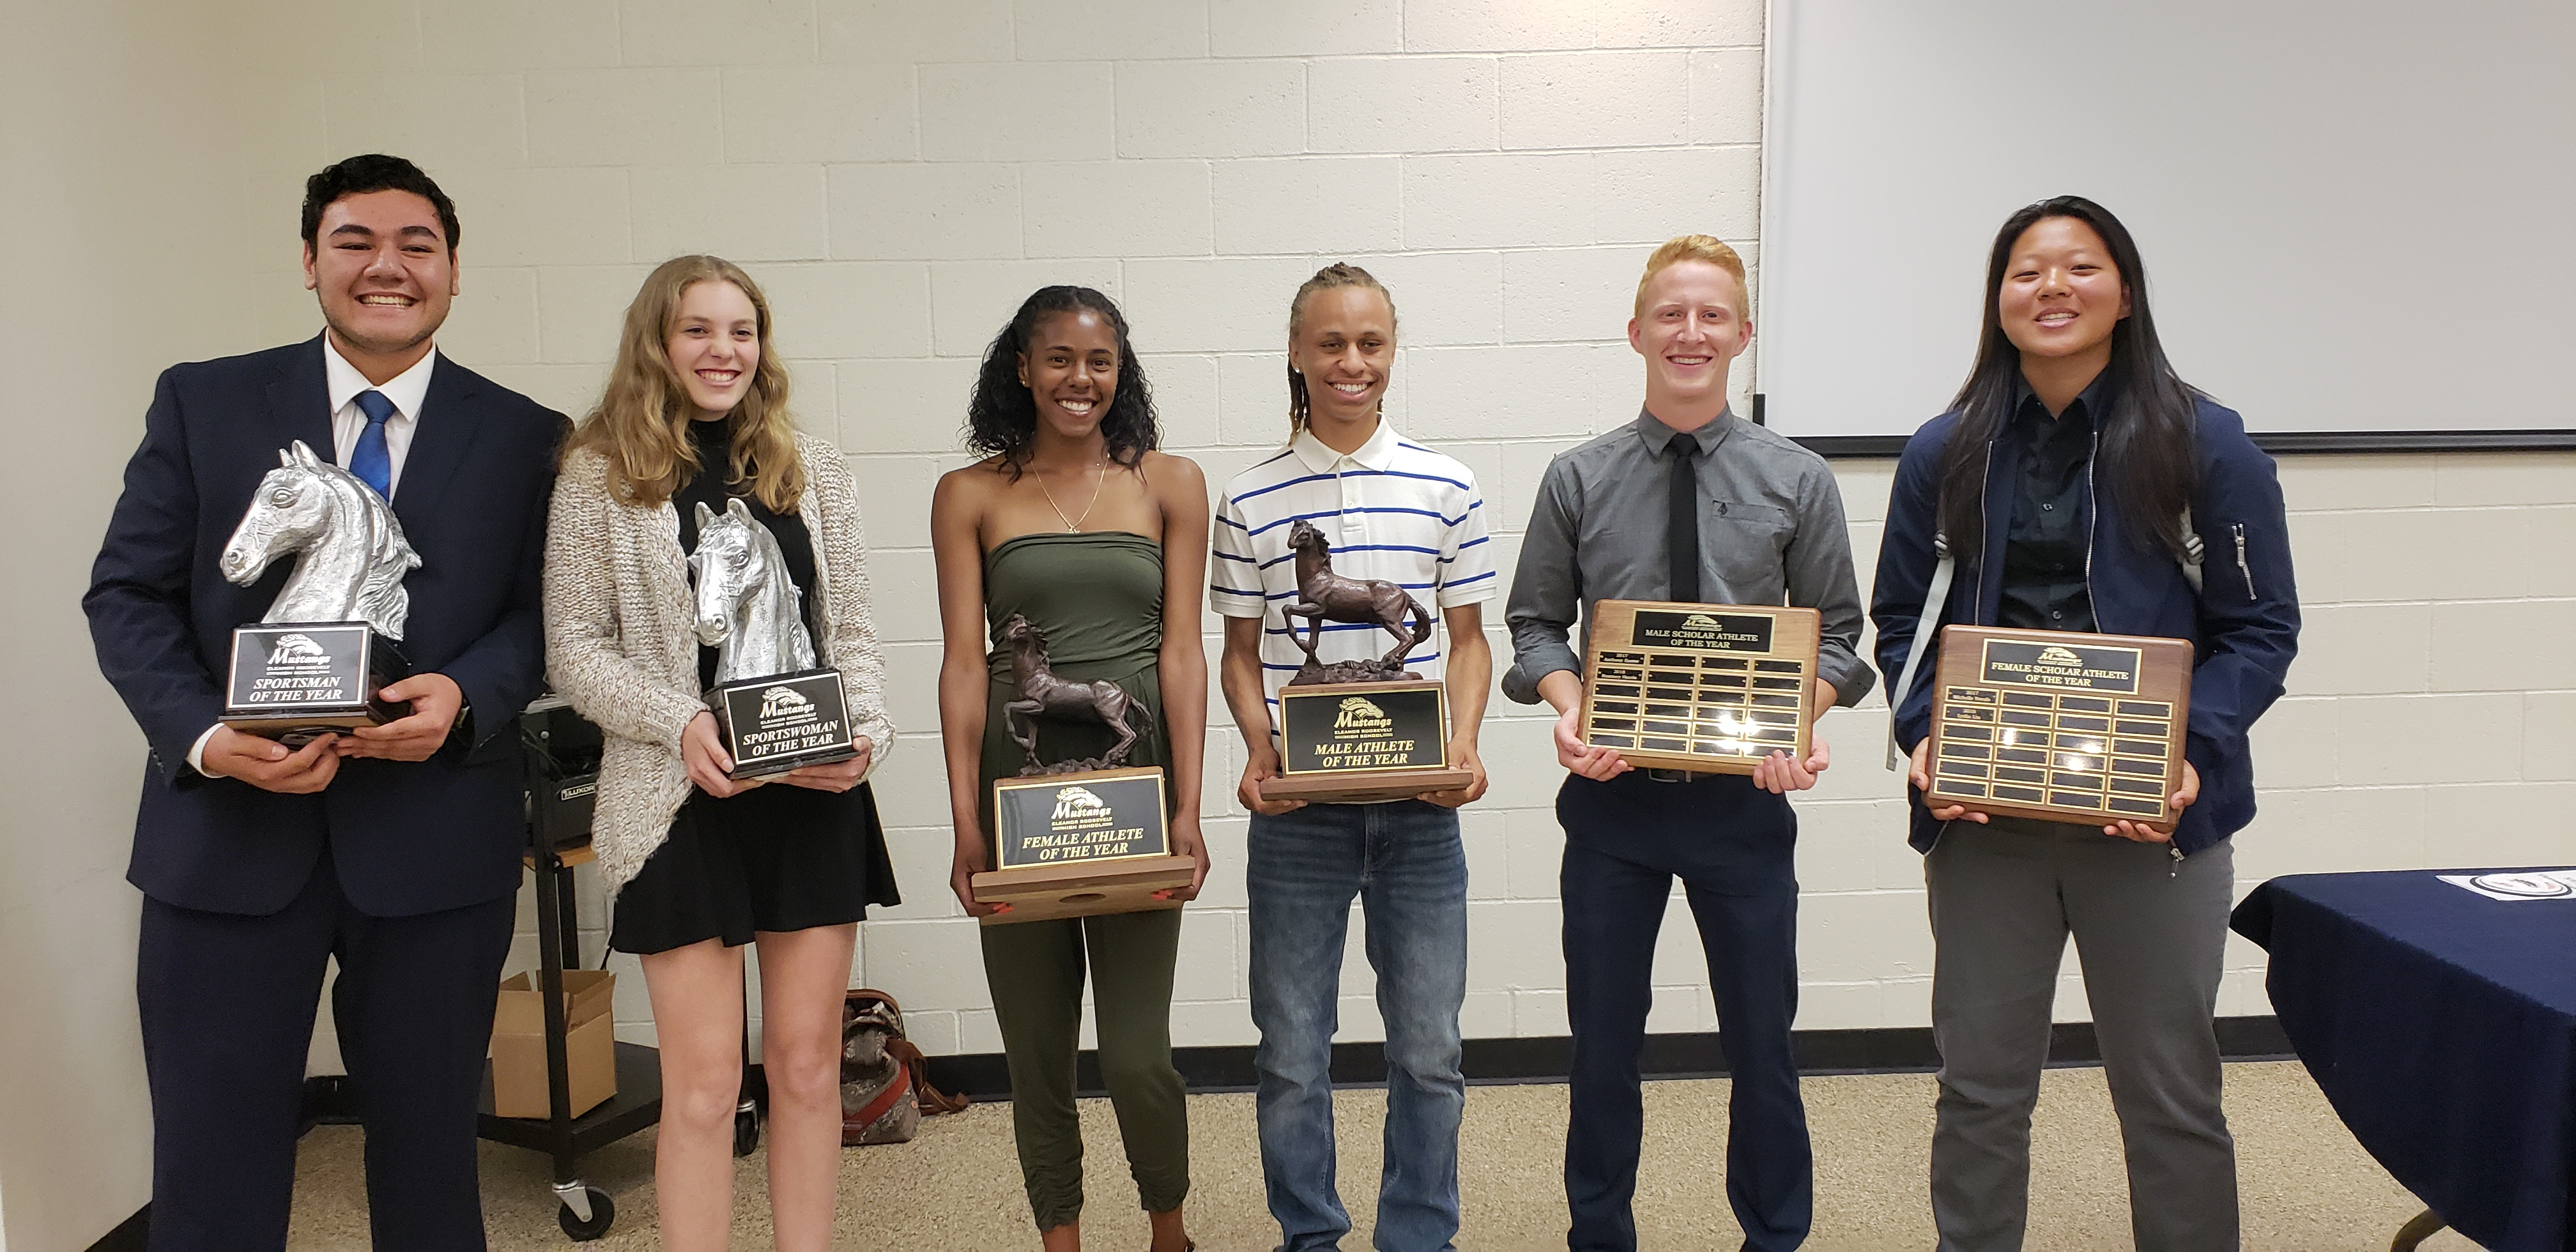 Top Athletes Honored at the 5th Annual All Sports Banquet